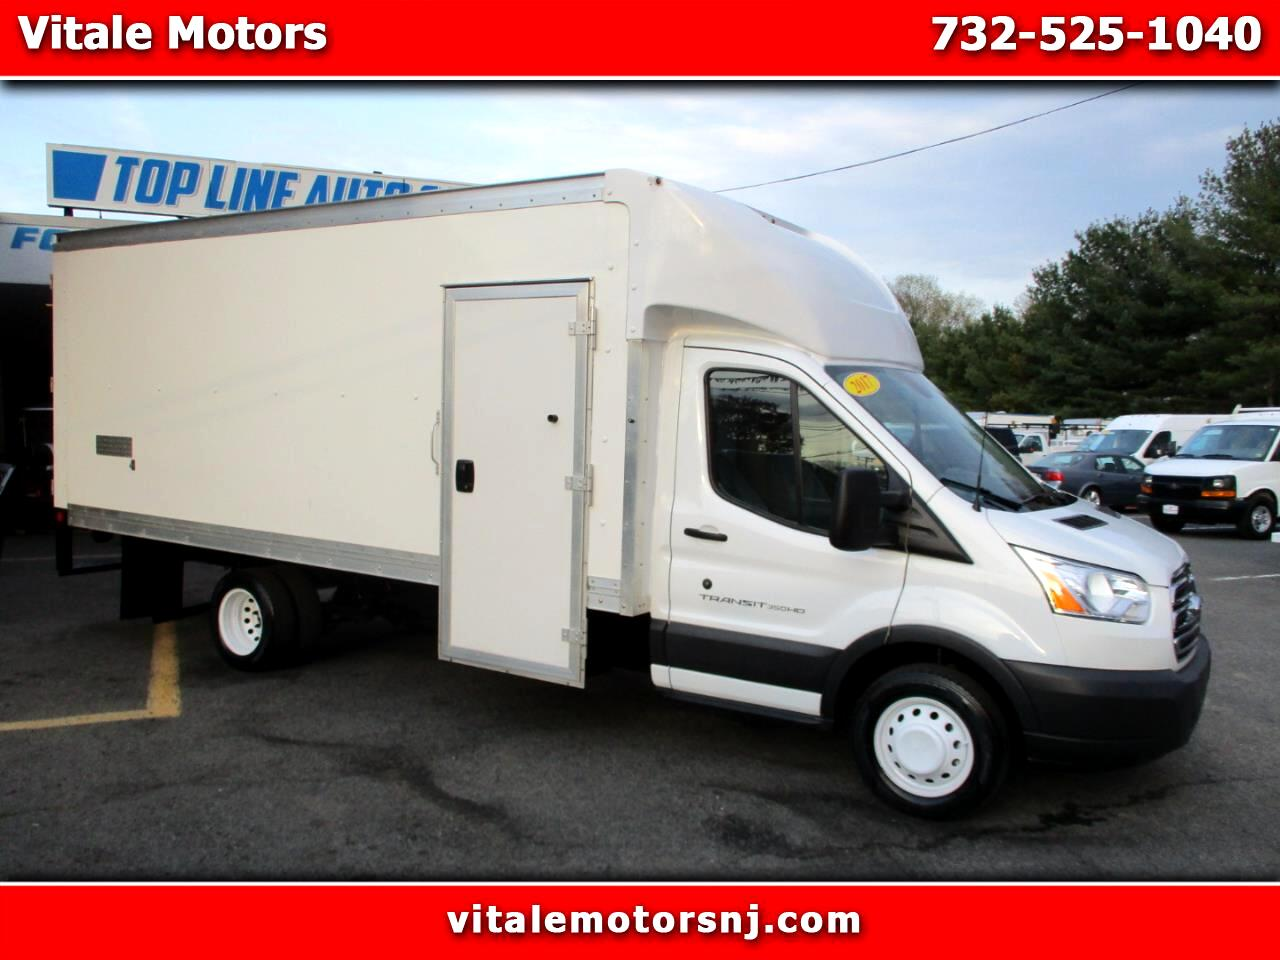 2017 Ford Transit T-350 TRANSIT 3500 BOX TRUCK 16 FOOR W/ SIDE STEP